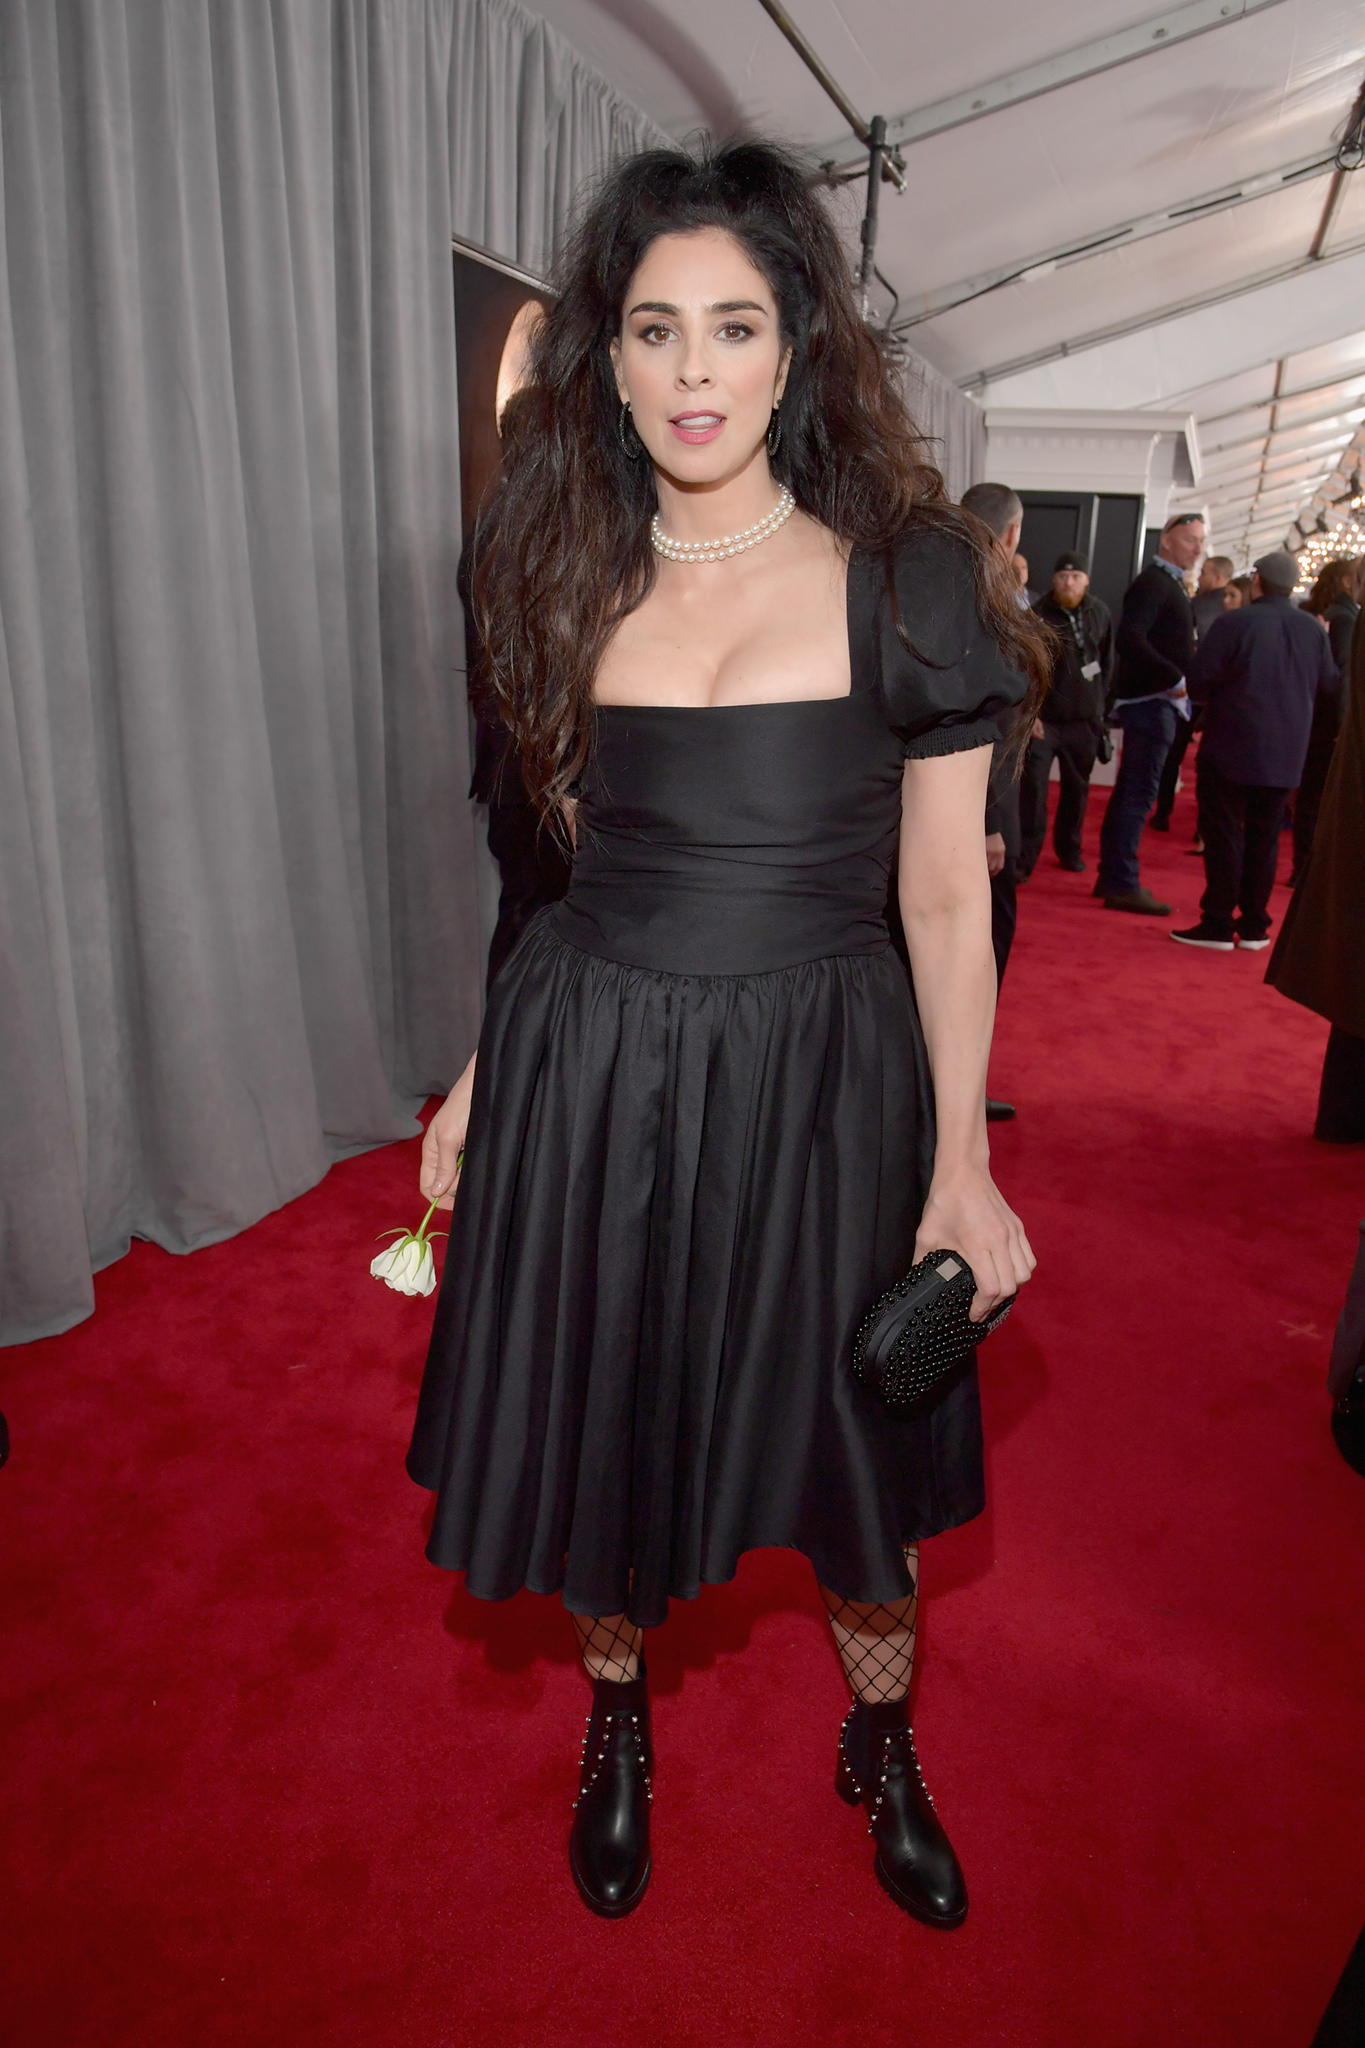 Comedian Sarah Silverman, white rose detail, attends the 60th Annual GRAMMY Awards at Madison Square Garden on January 28, 2018 in New York City.